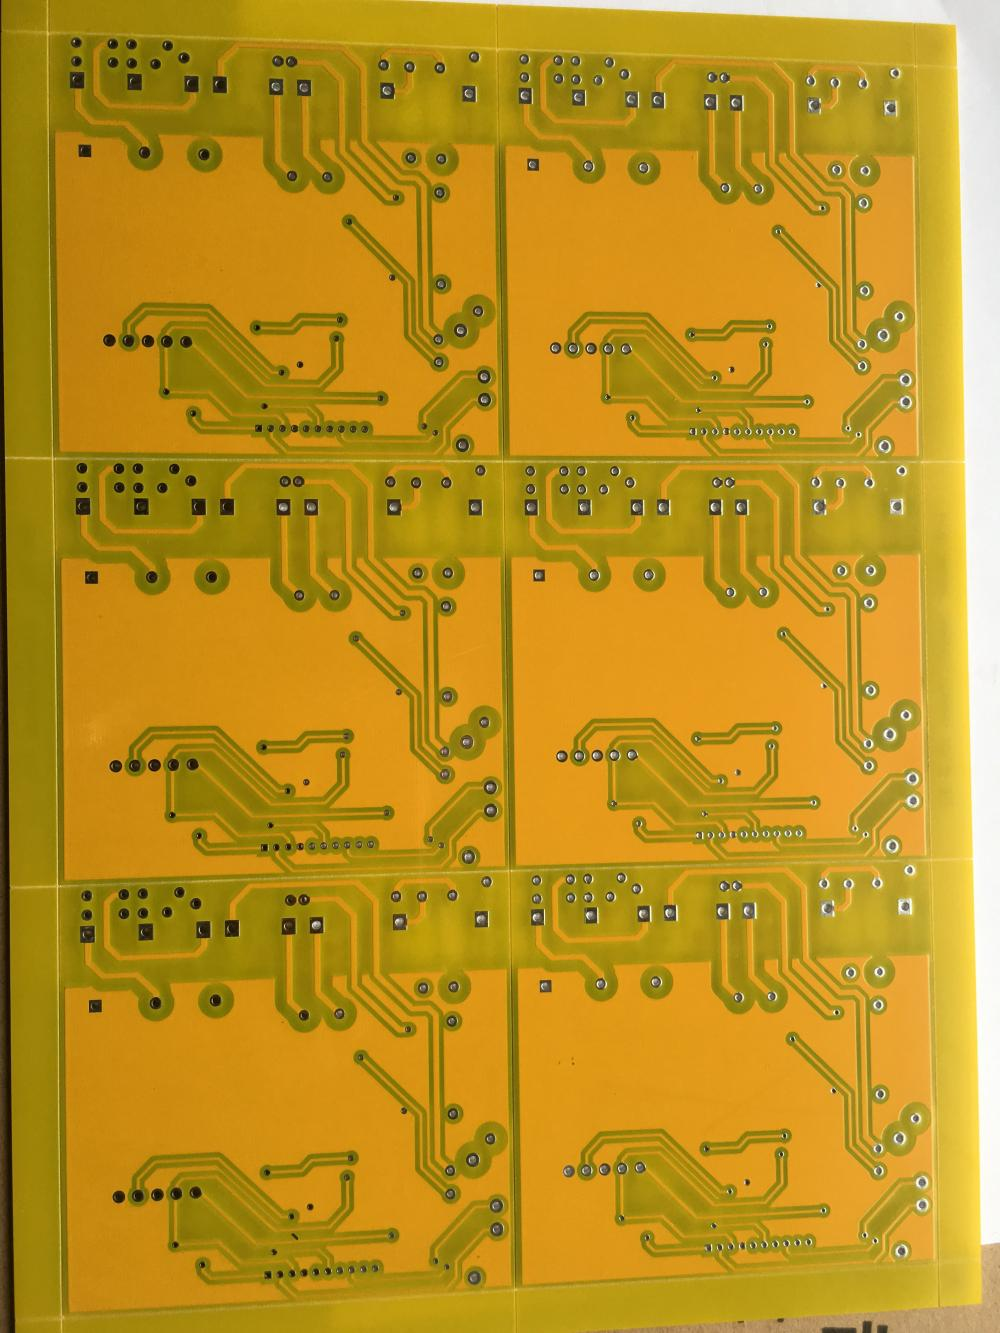 2 layer Yellow solder PCB